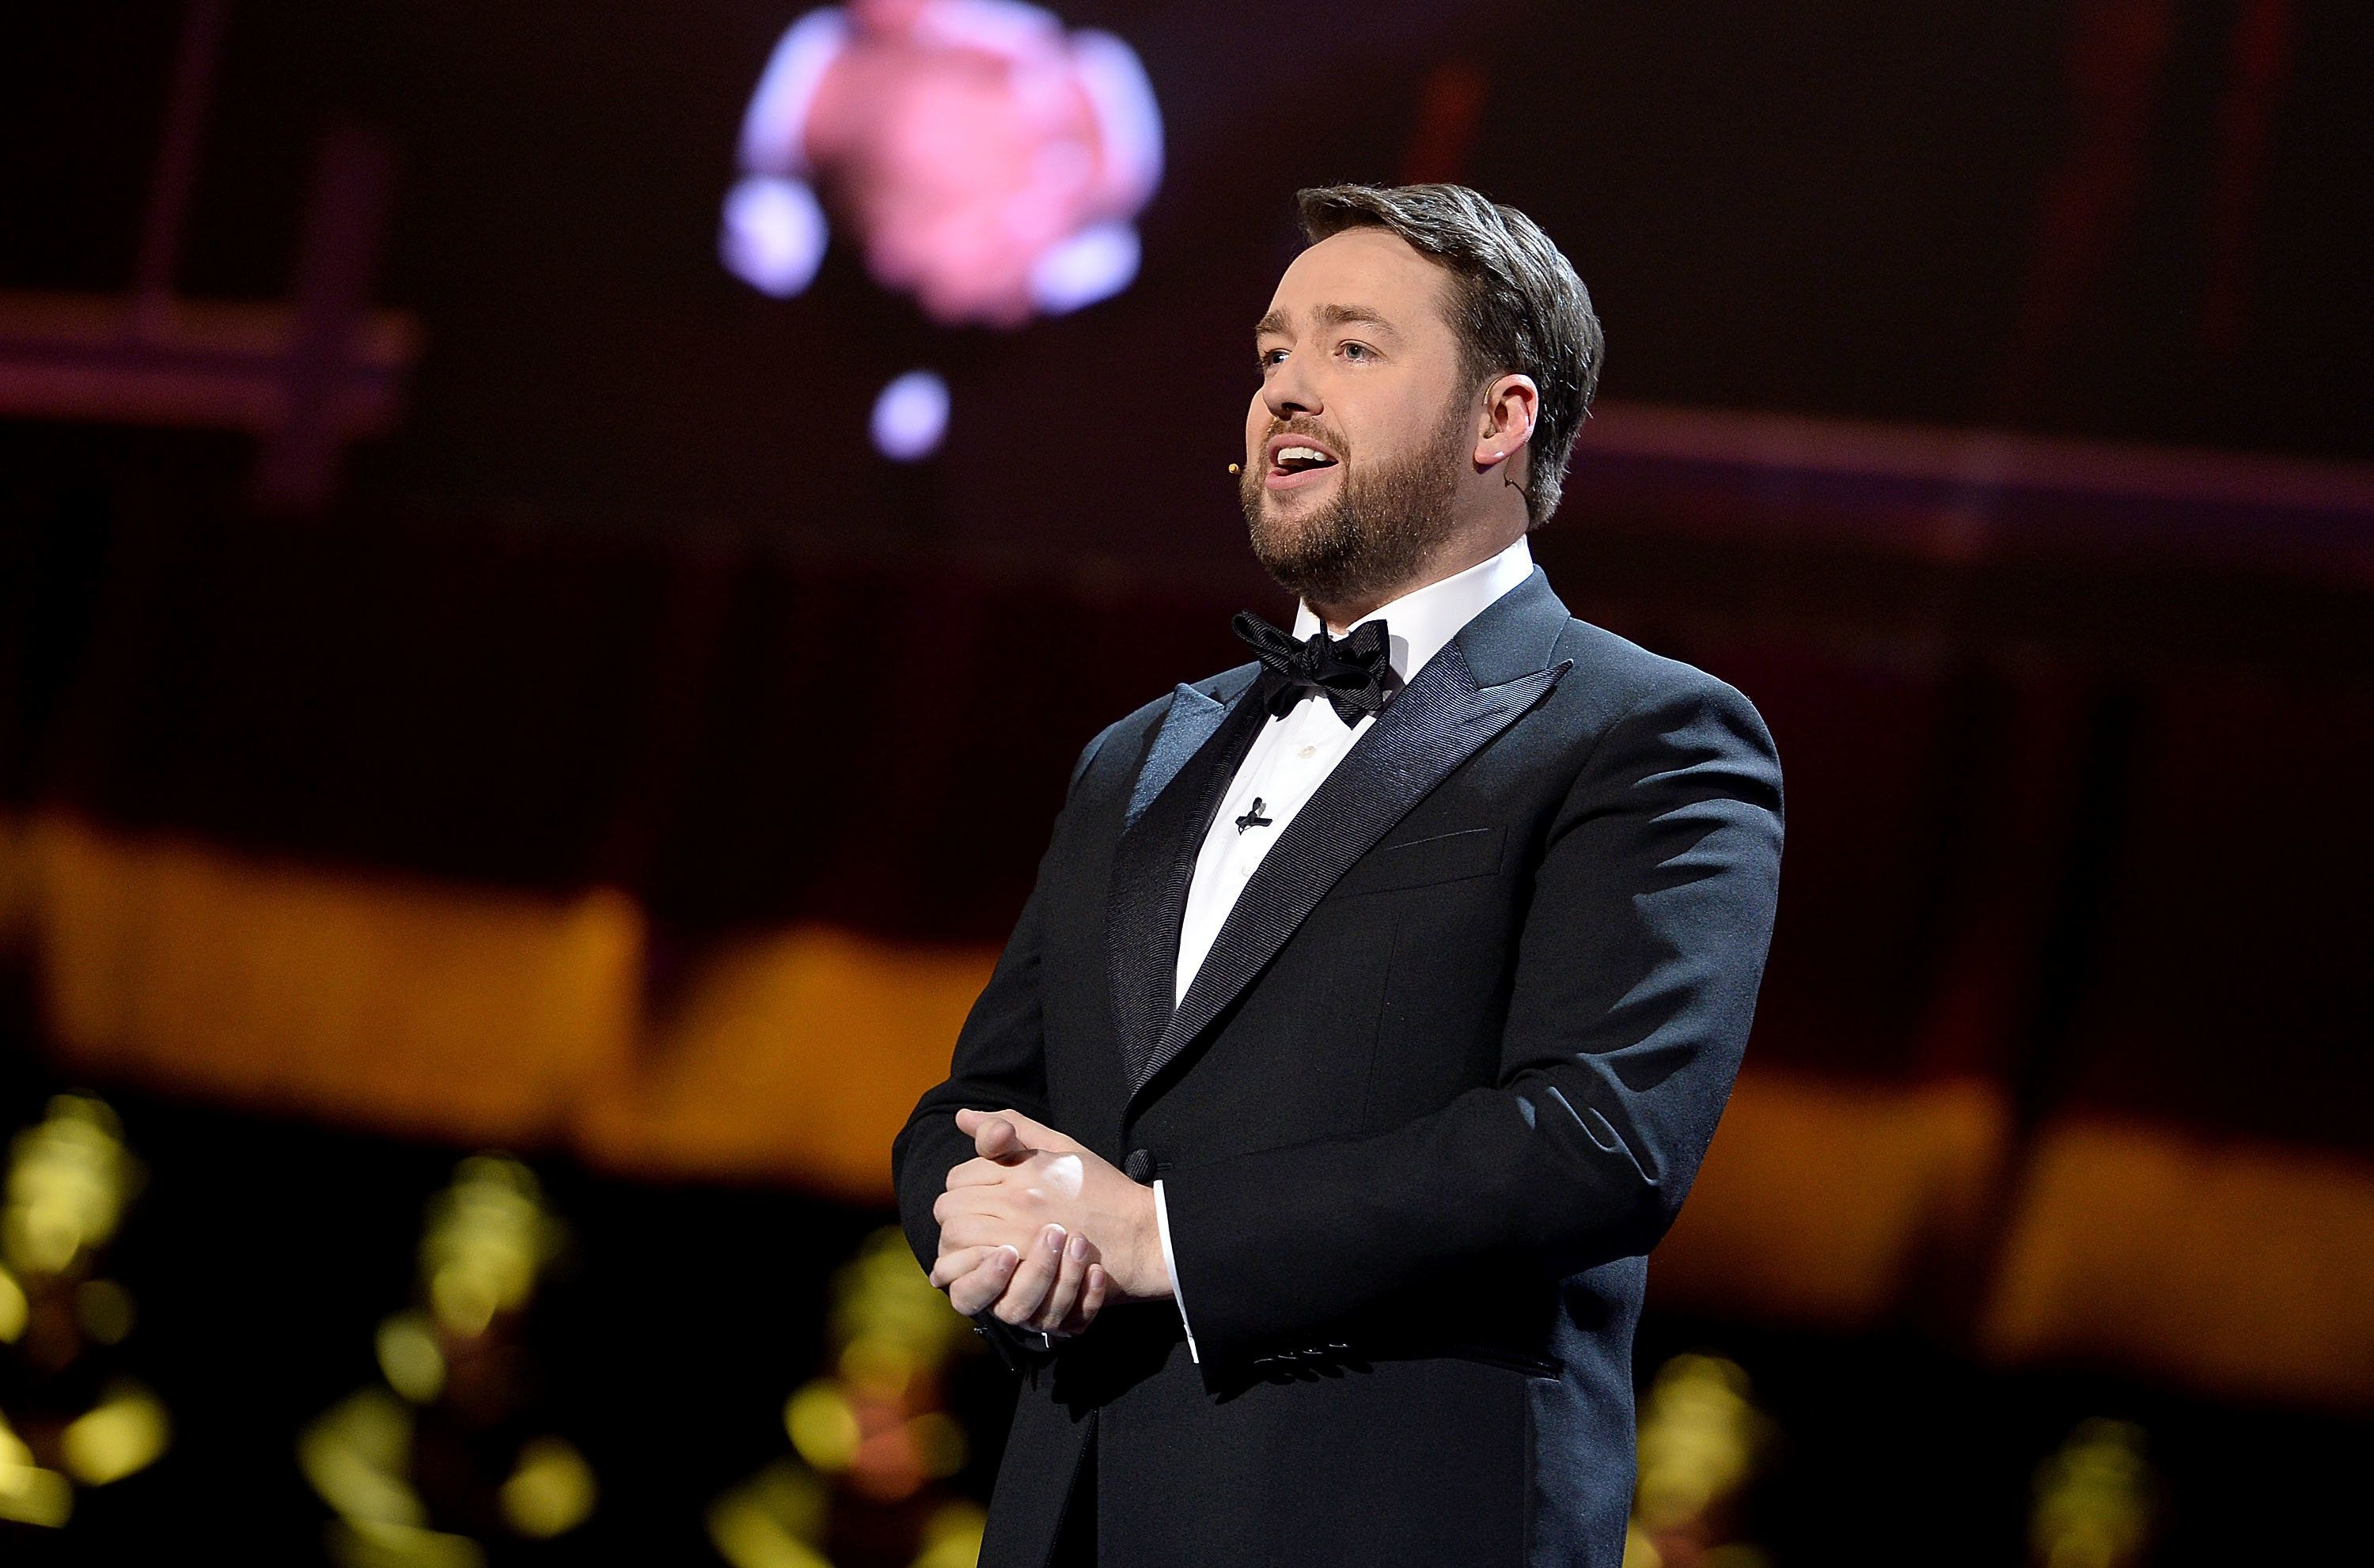 Jason Manford Deletes Twitter After Being Forced To Defend Manchester Attack